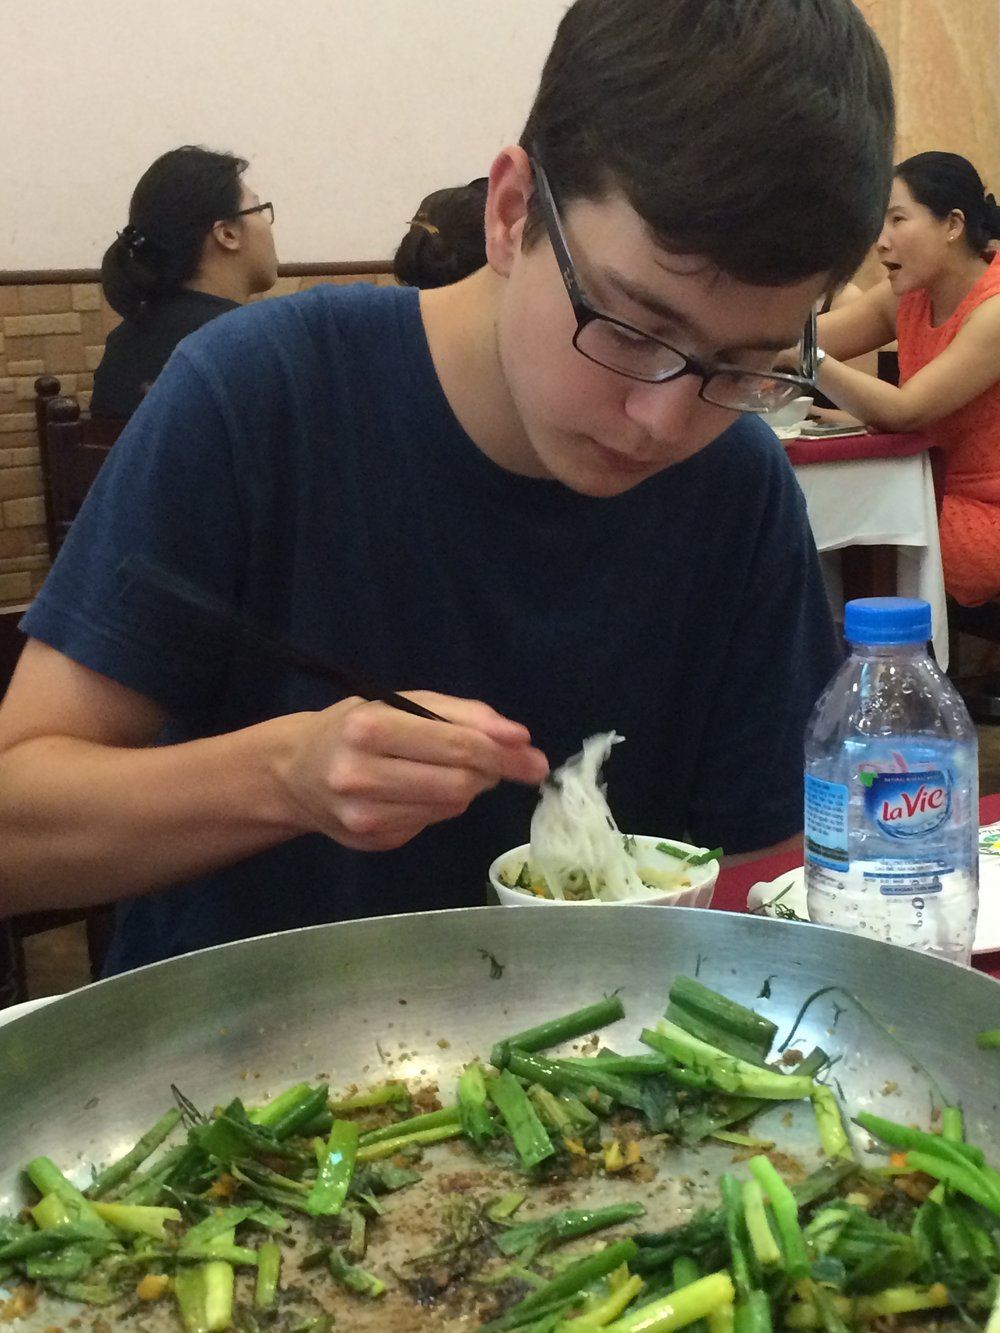 In Hanoi, the family-style food is often scooped onto fresh rice noodles